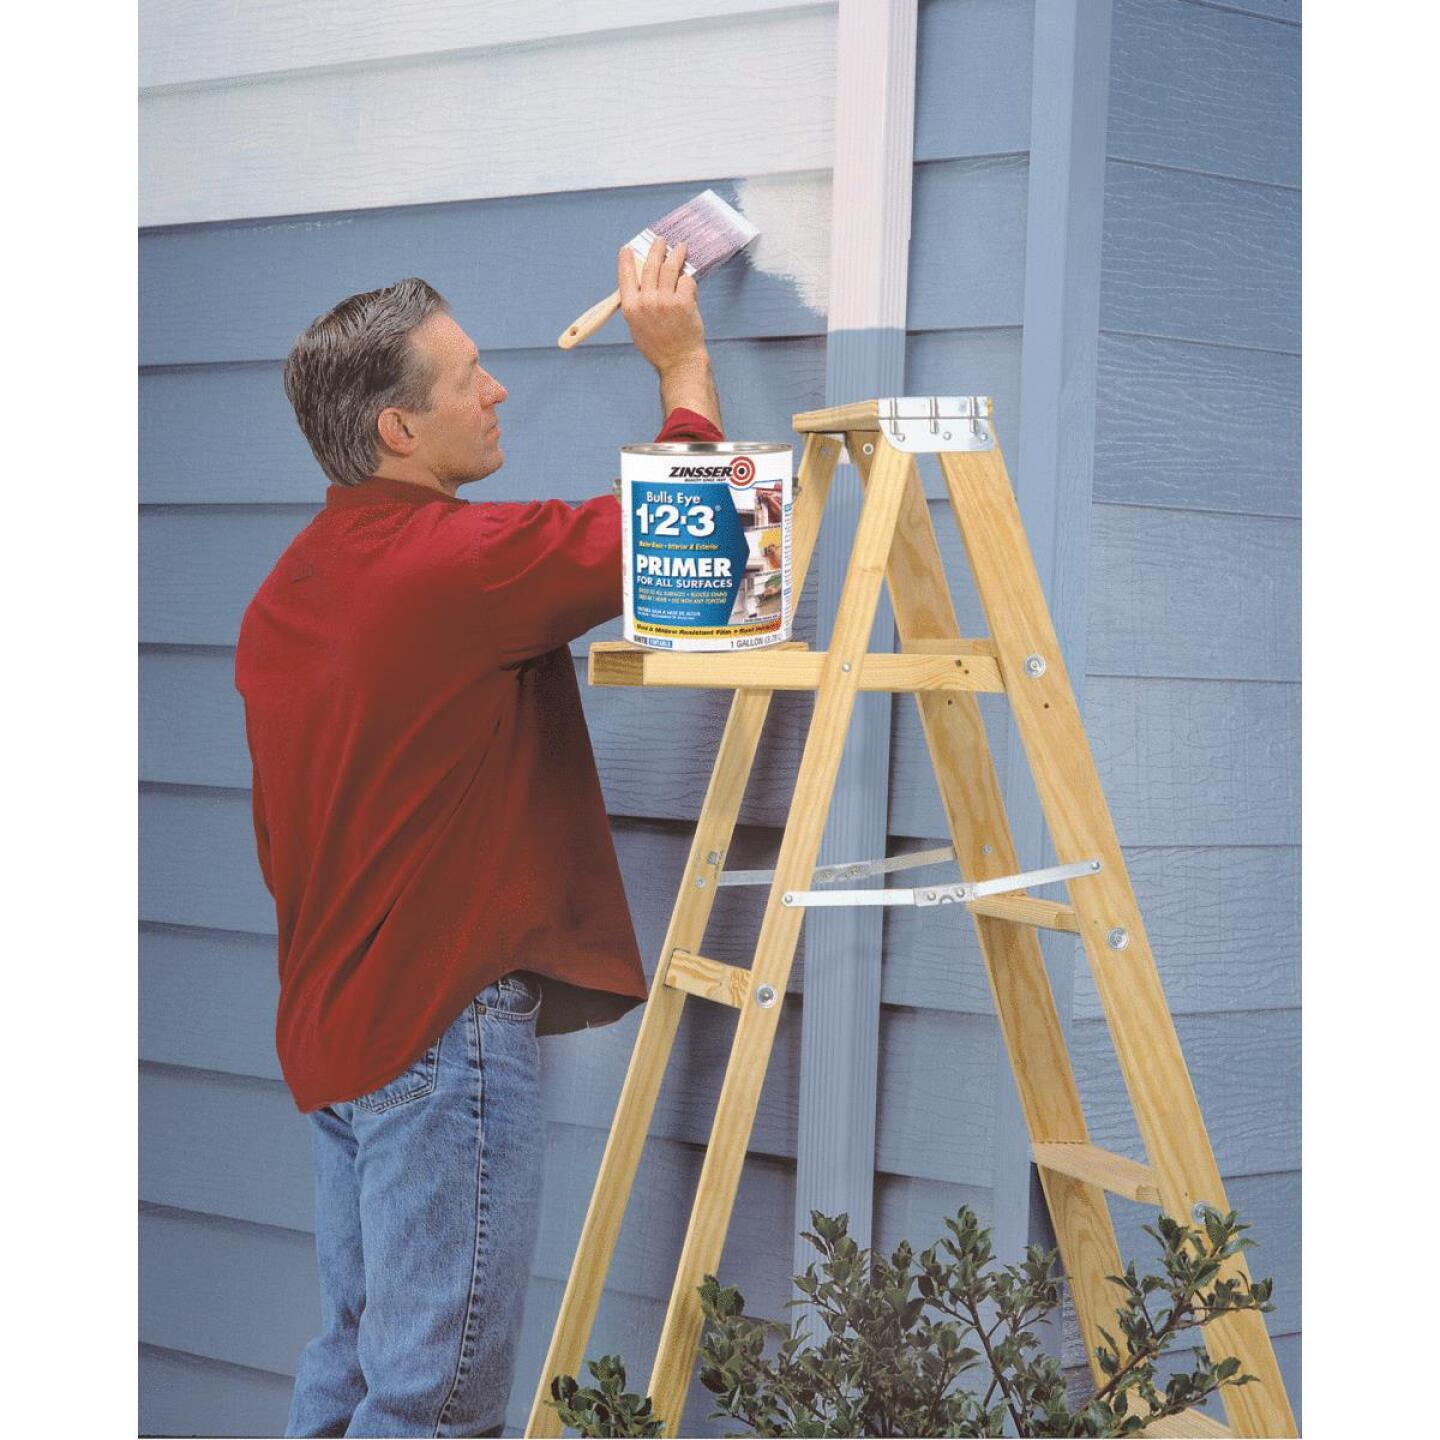 Zinsser Bulls Eye 1-2-3 Water-Base Interior/Exterior Stain Blocking Primer, White, 1 Gal. Image 2